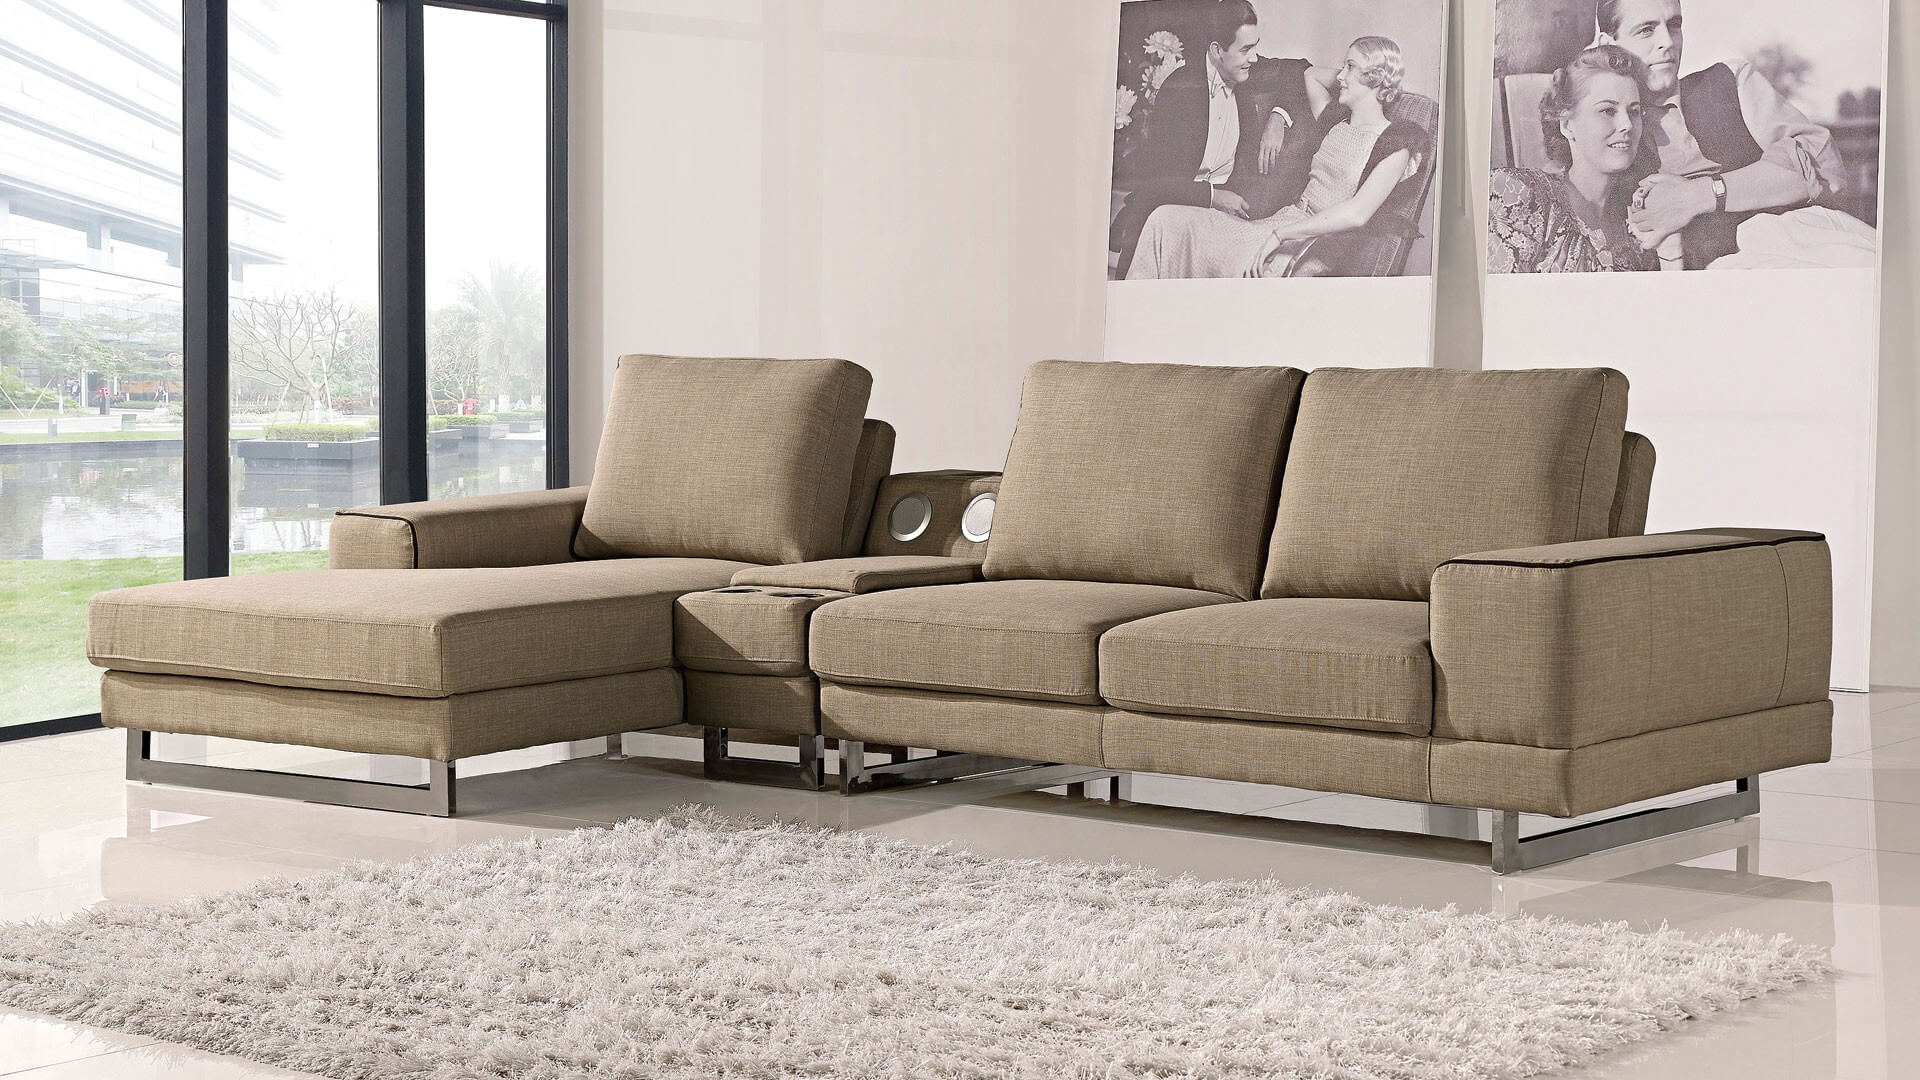 Awesome Adele Sectional Sofa Left Arm Chaise Facing Ncnpc Chair Design For Home Ncnpcorg